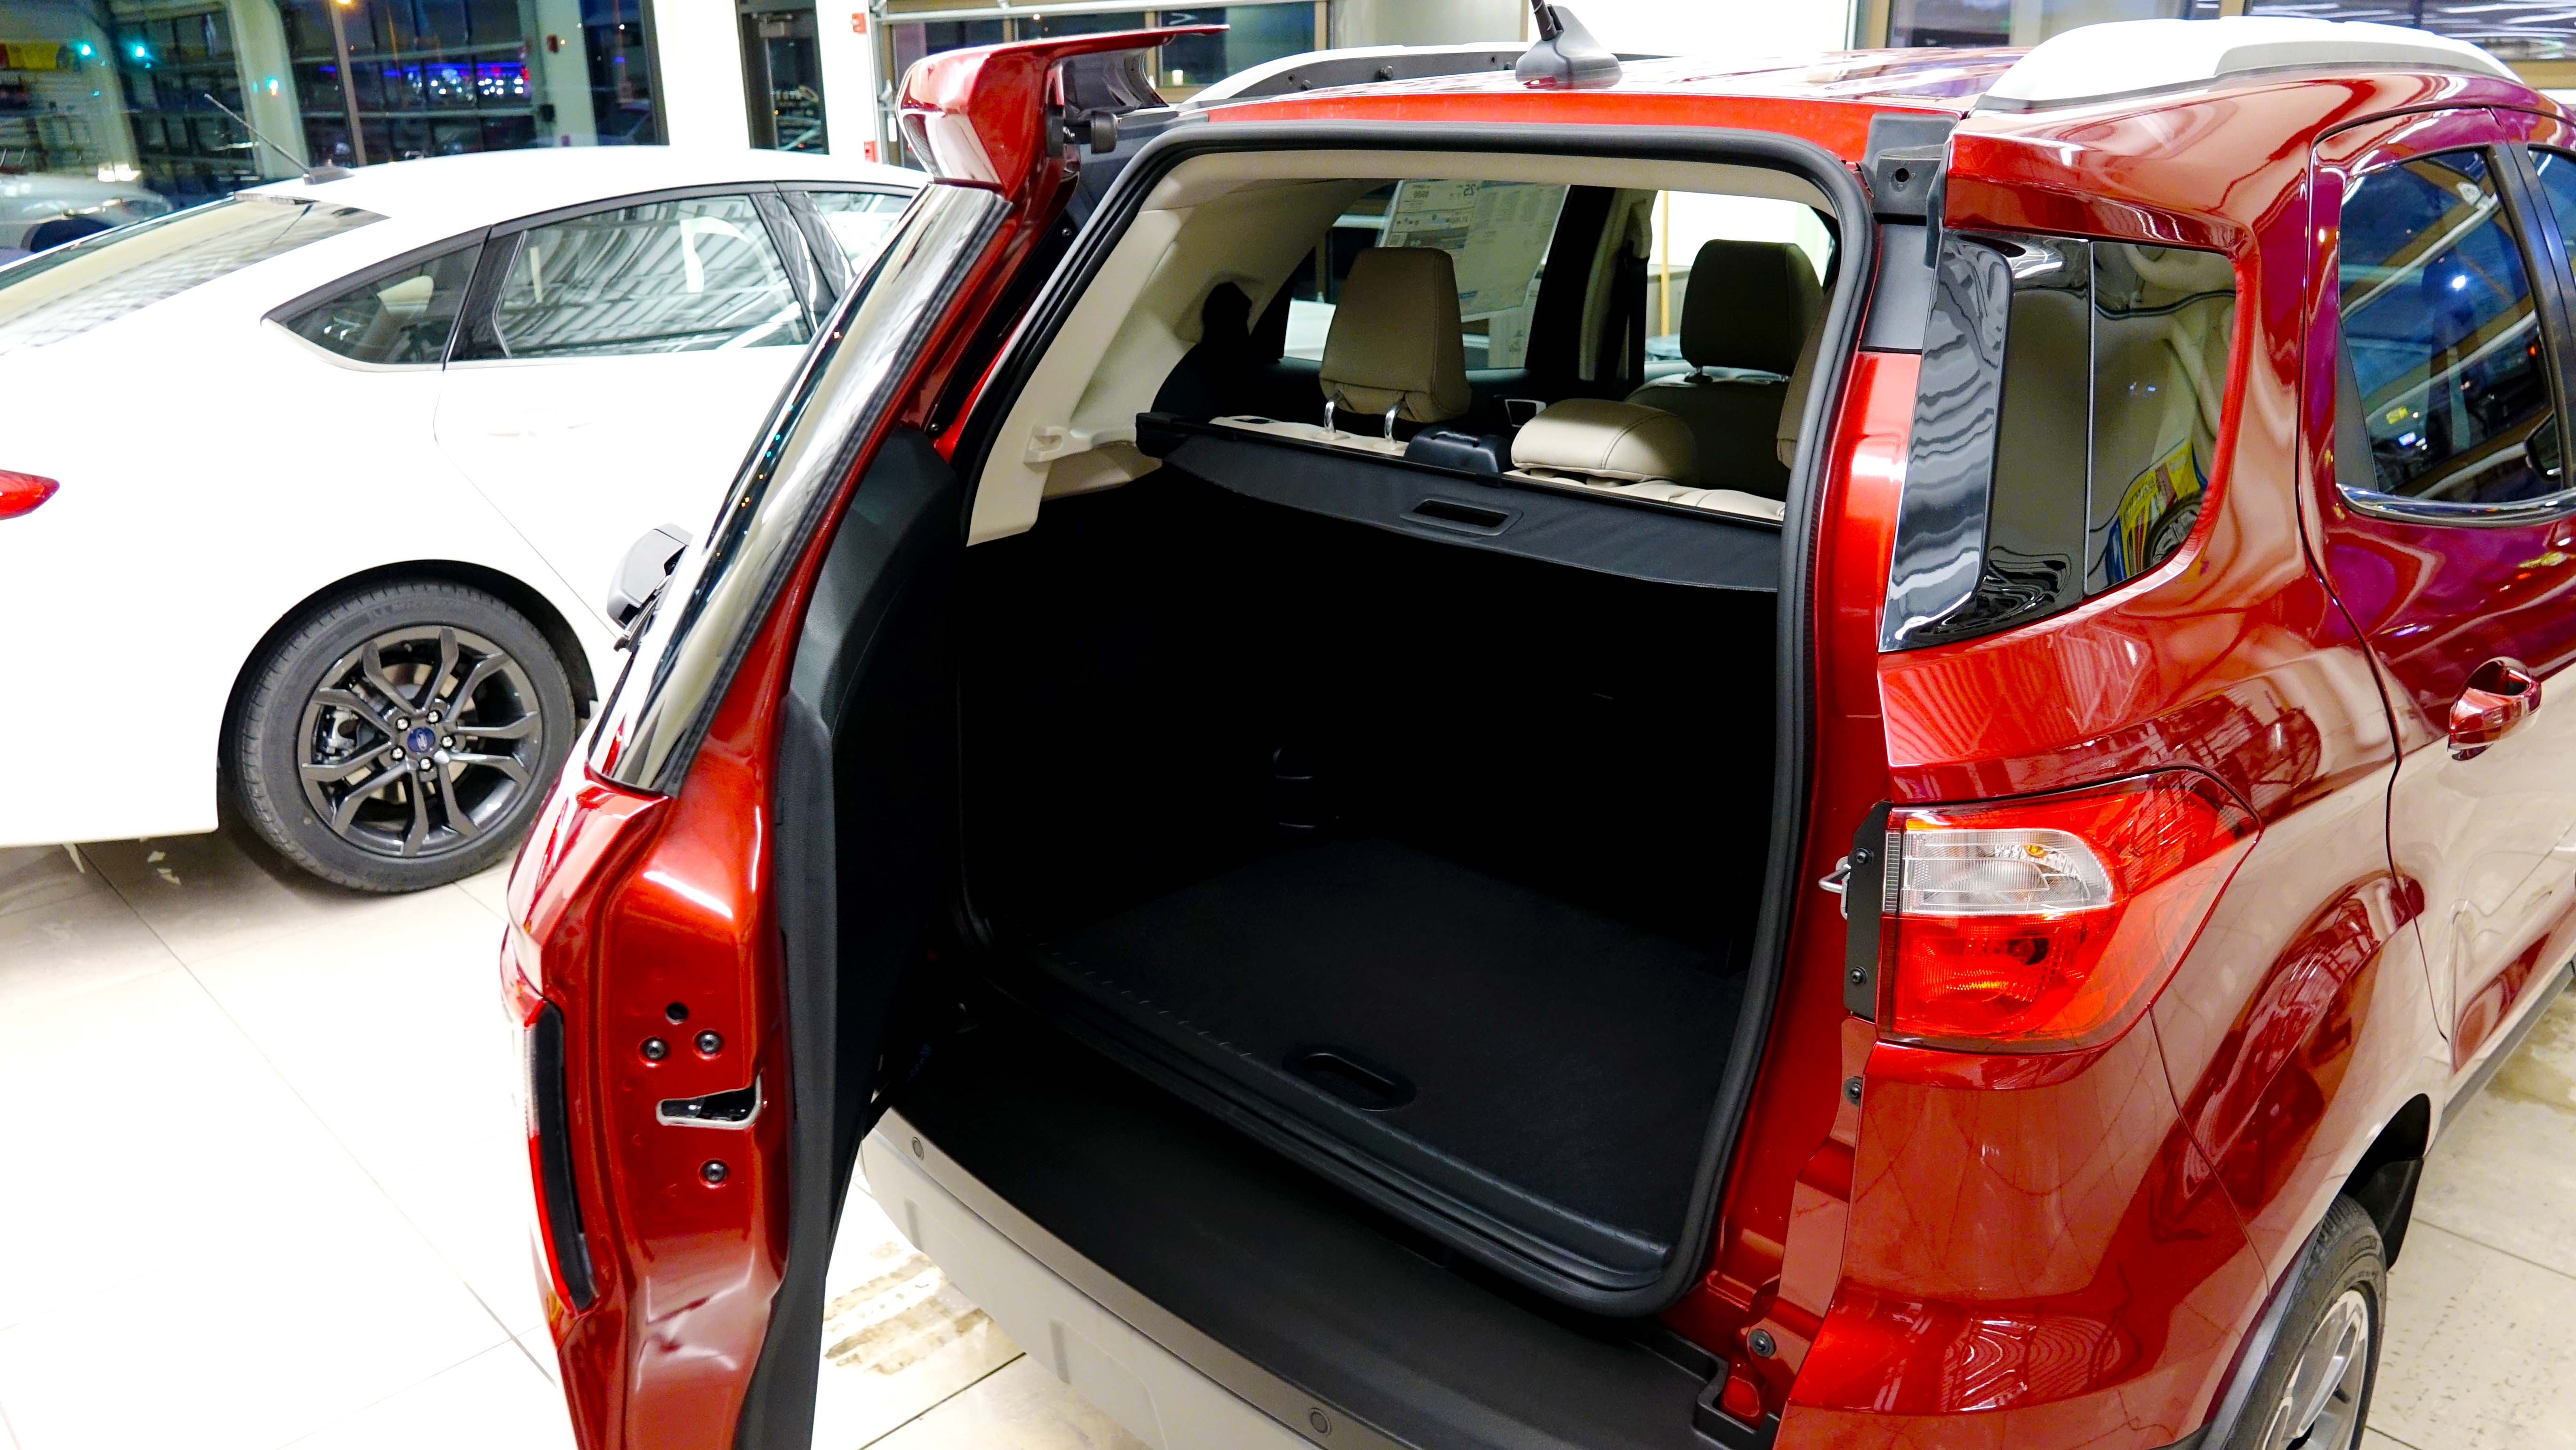 Have you ever seen a rear hatch like this?